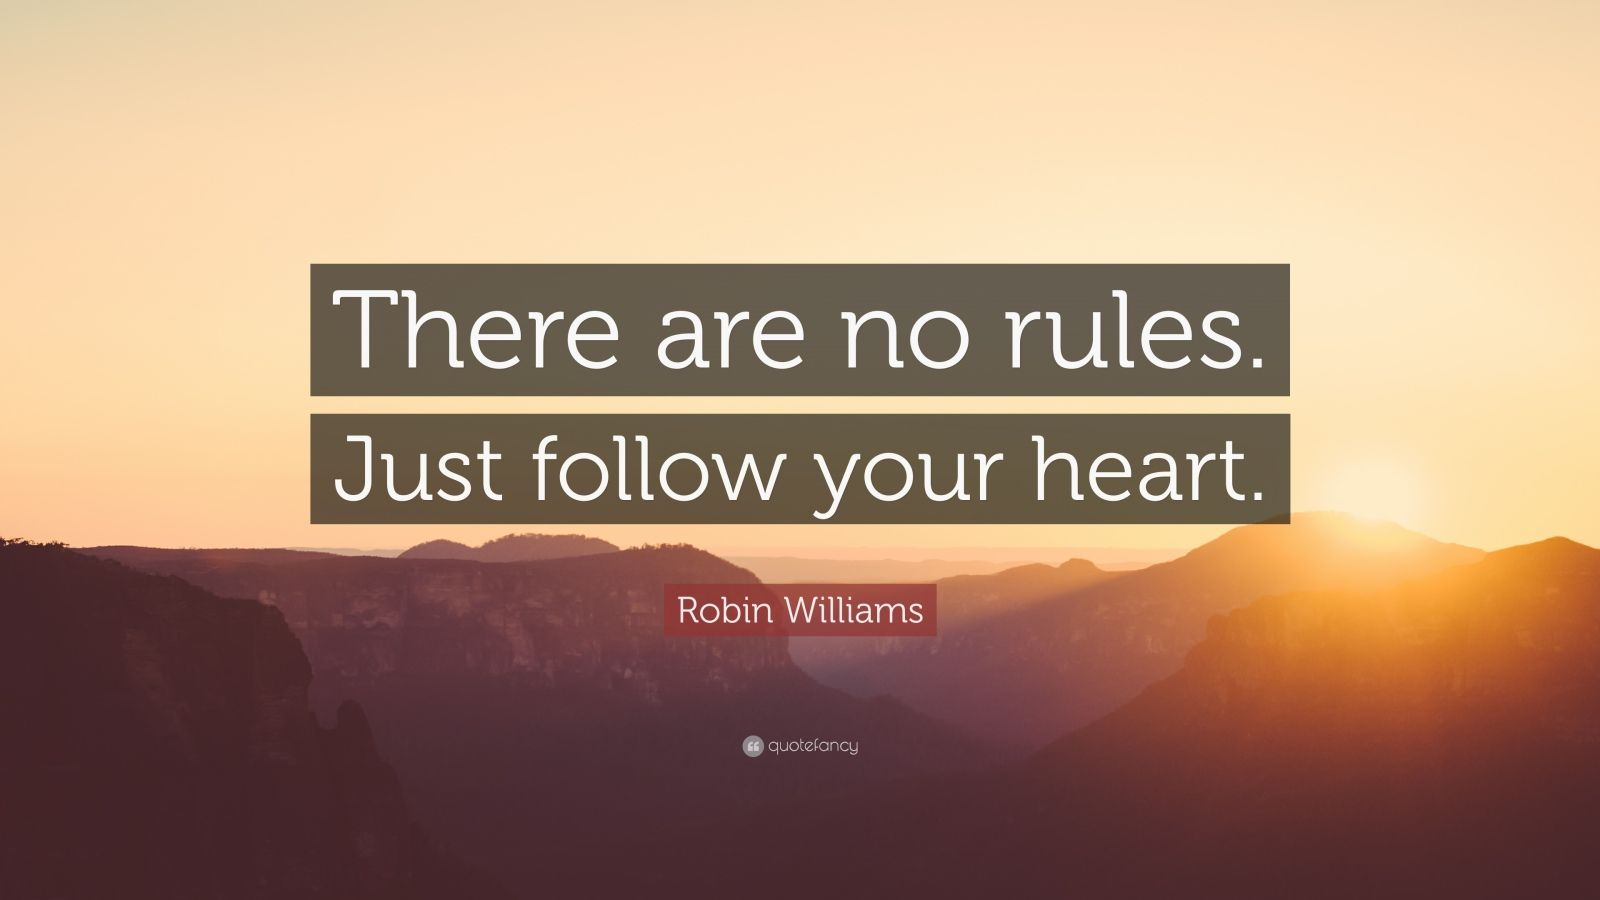 Ernest Hemingway Quote Wallpaper Robin Williams Quote There Are No Rules Just Follow